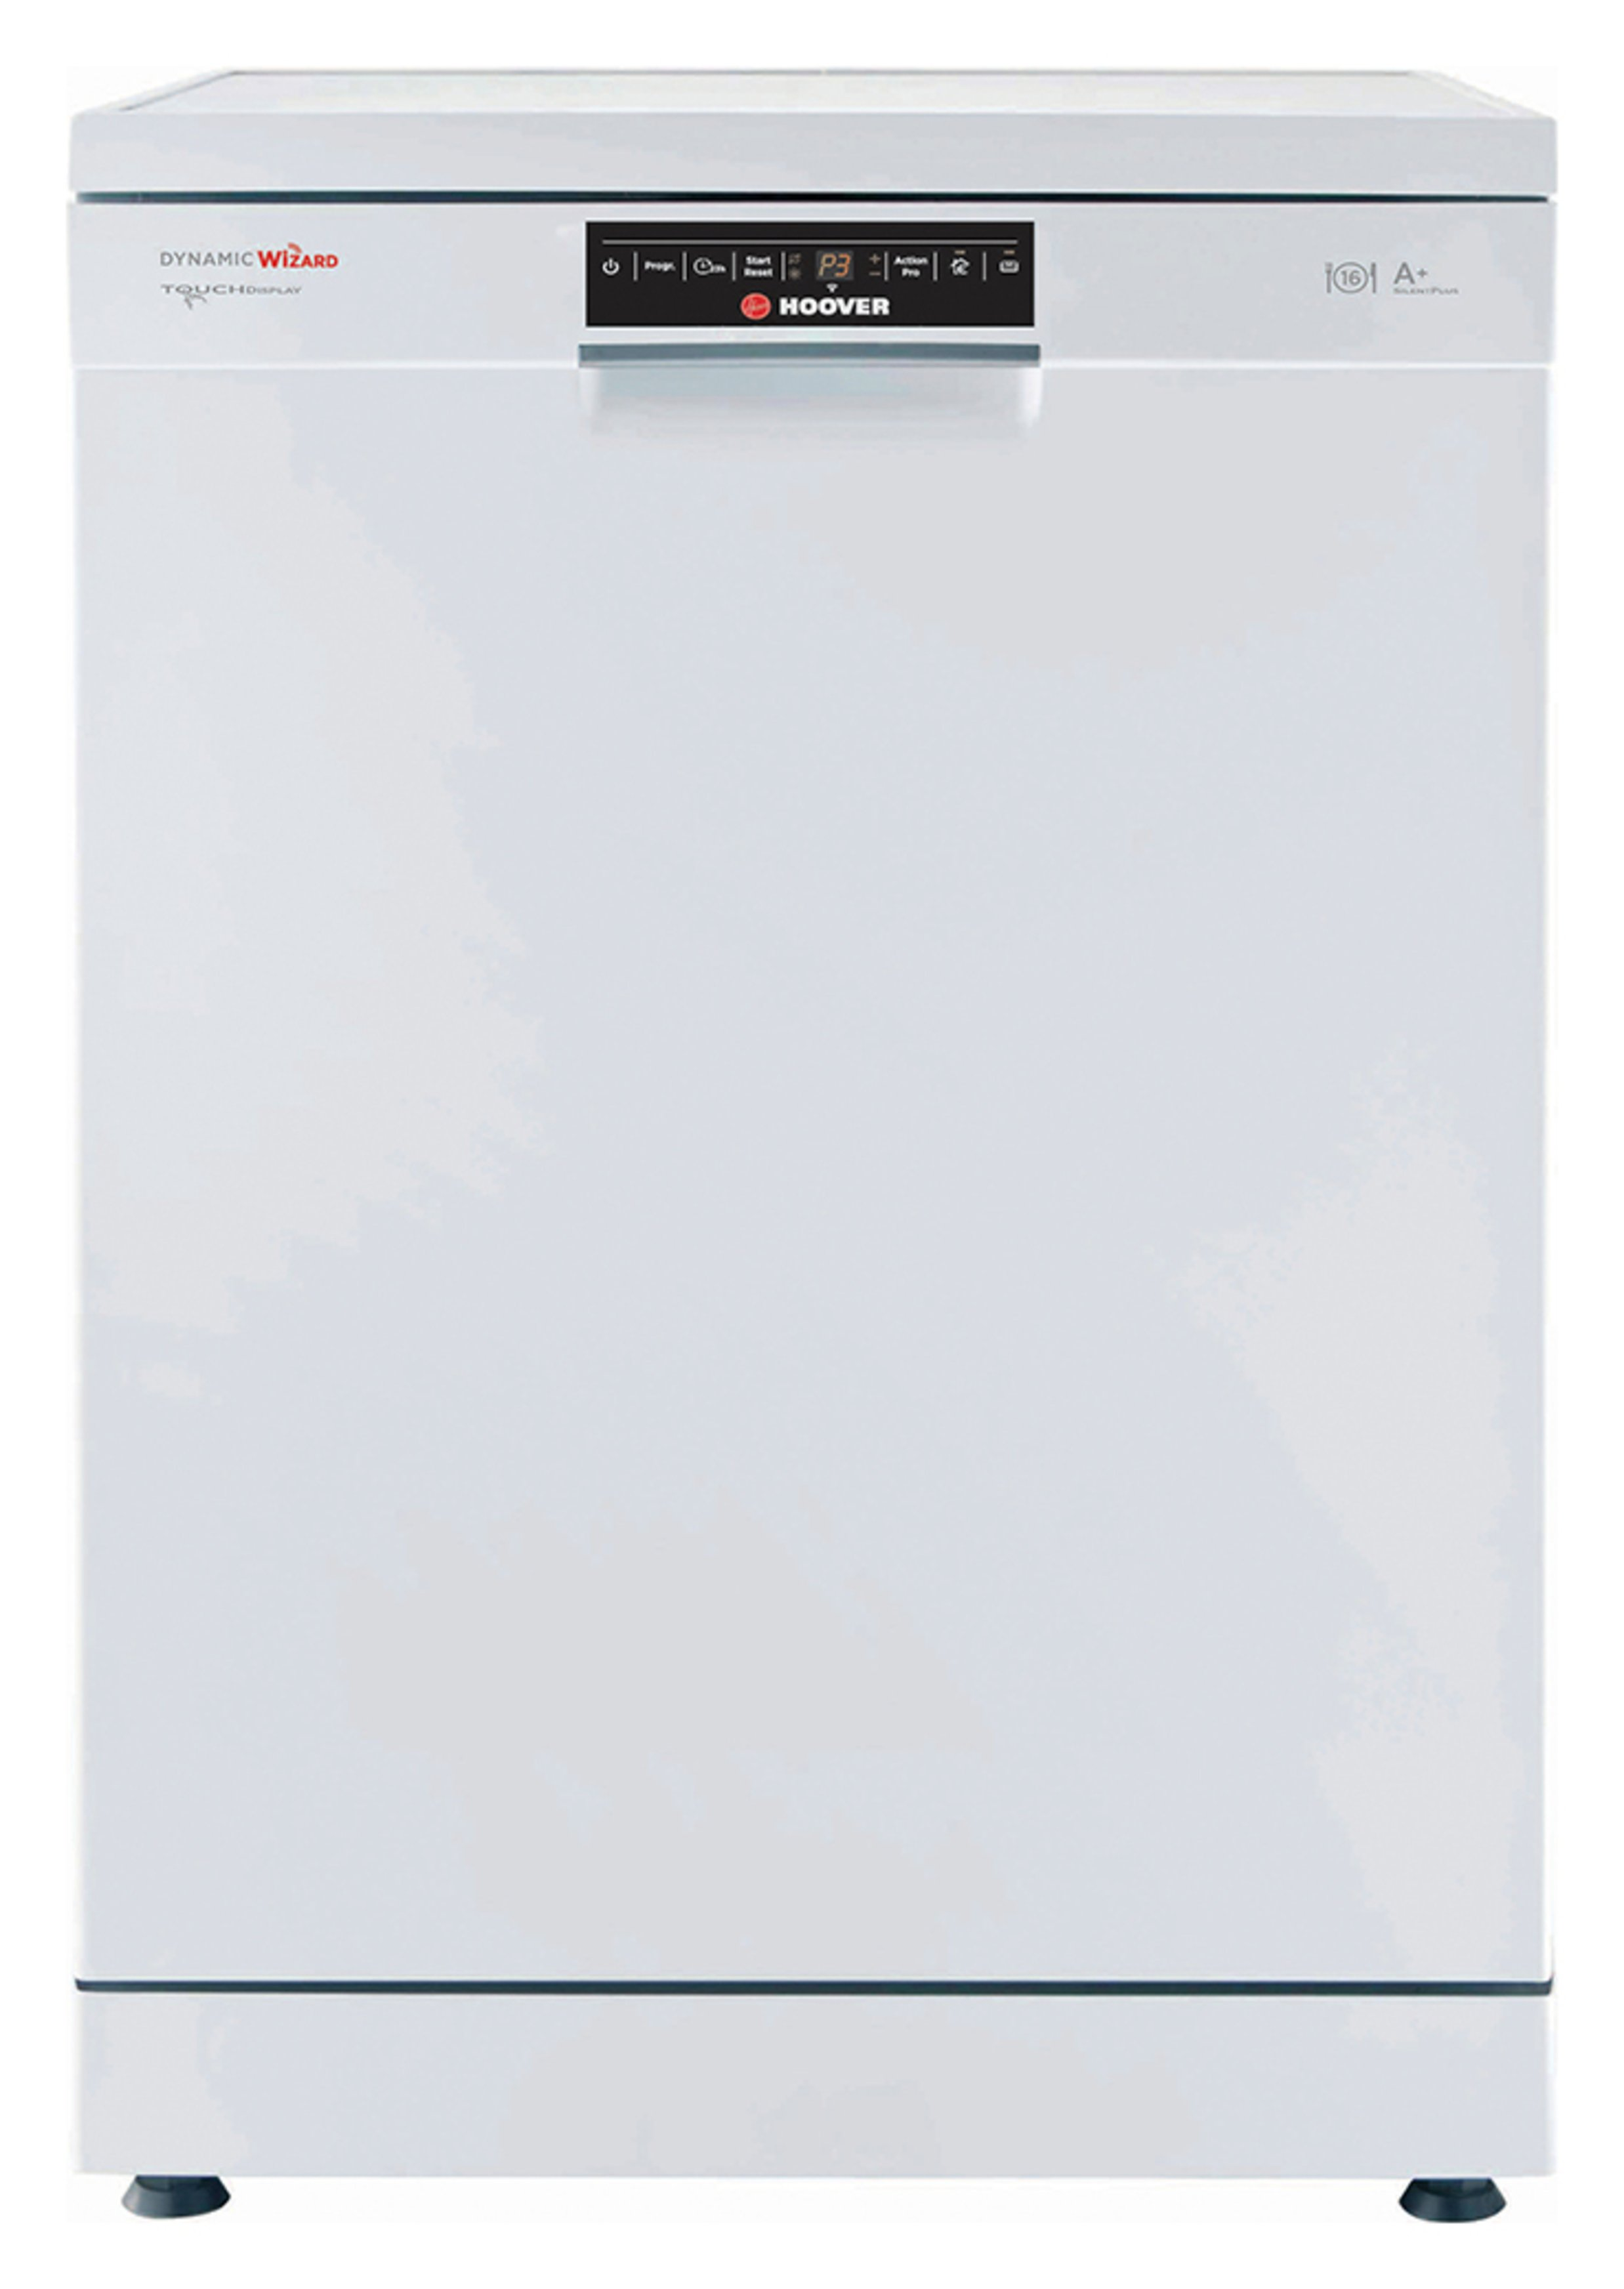 Image of Hoover - Wizard DYM762T Wi-Fi Dishwasher